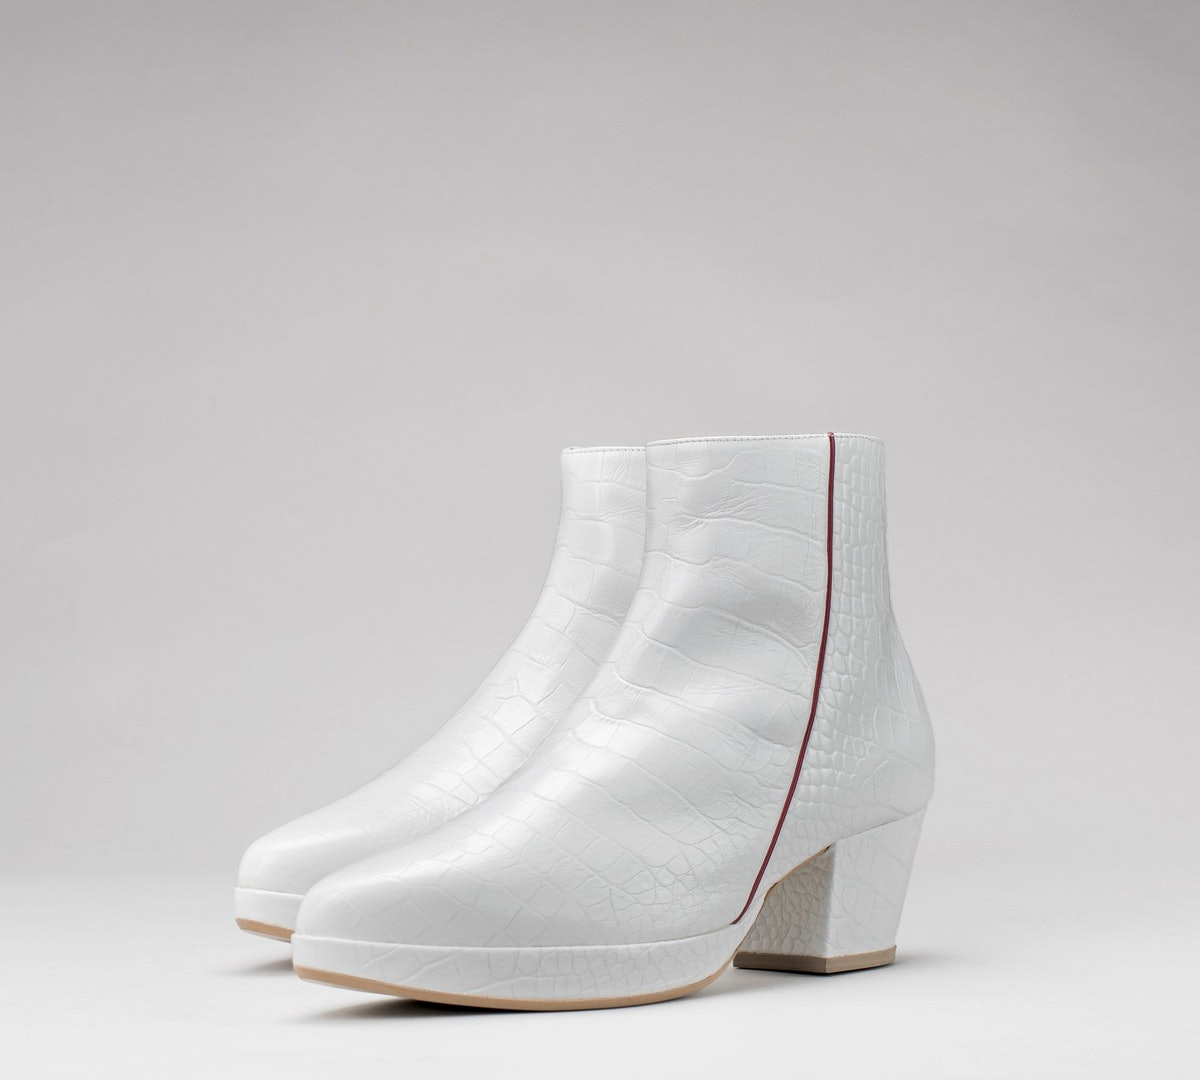 Anubis Scarabeus Ankle Boots in White from Rani Bageria.